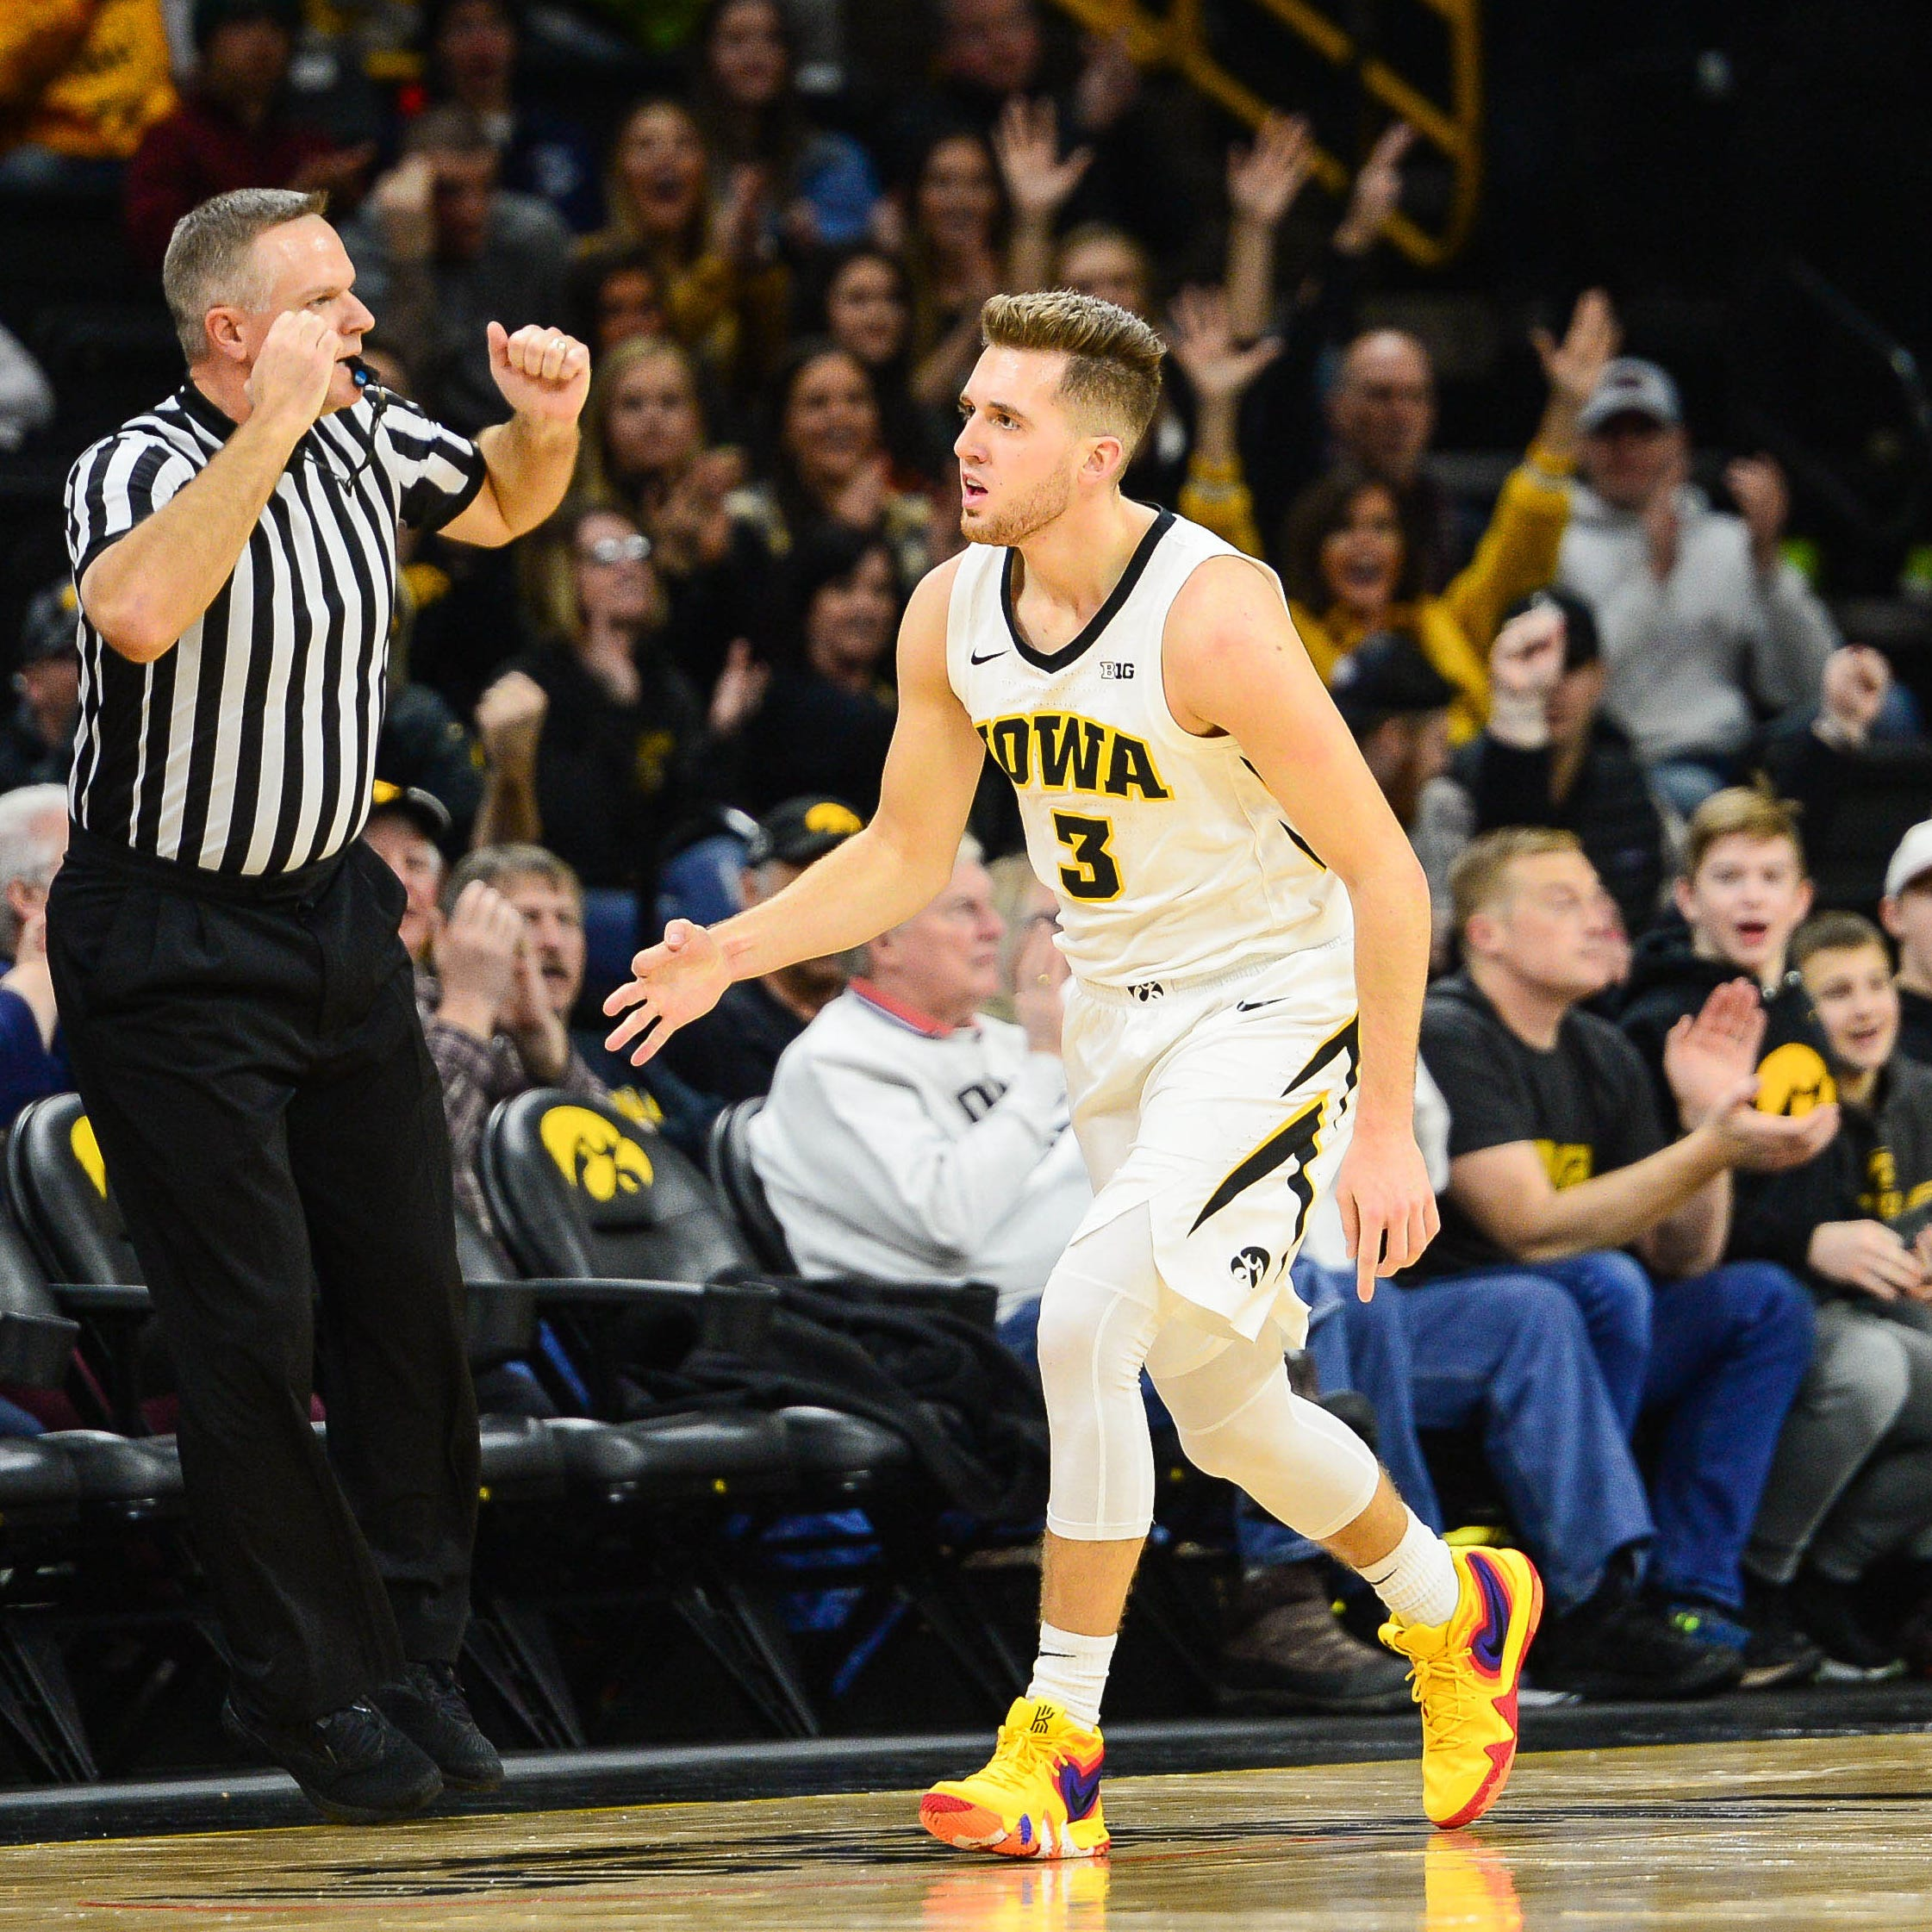 Leistikow: Reliving the (many) clutch moments of Jordan Bohannon's Iowa basketball career